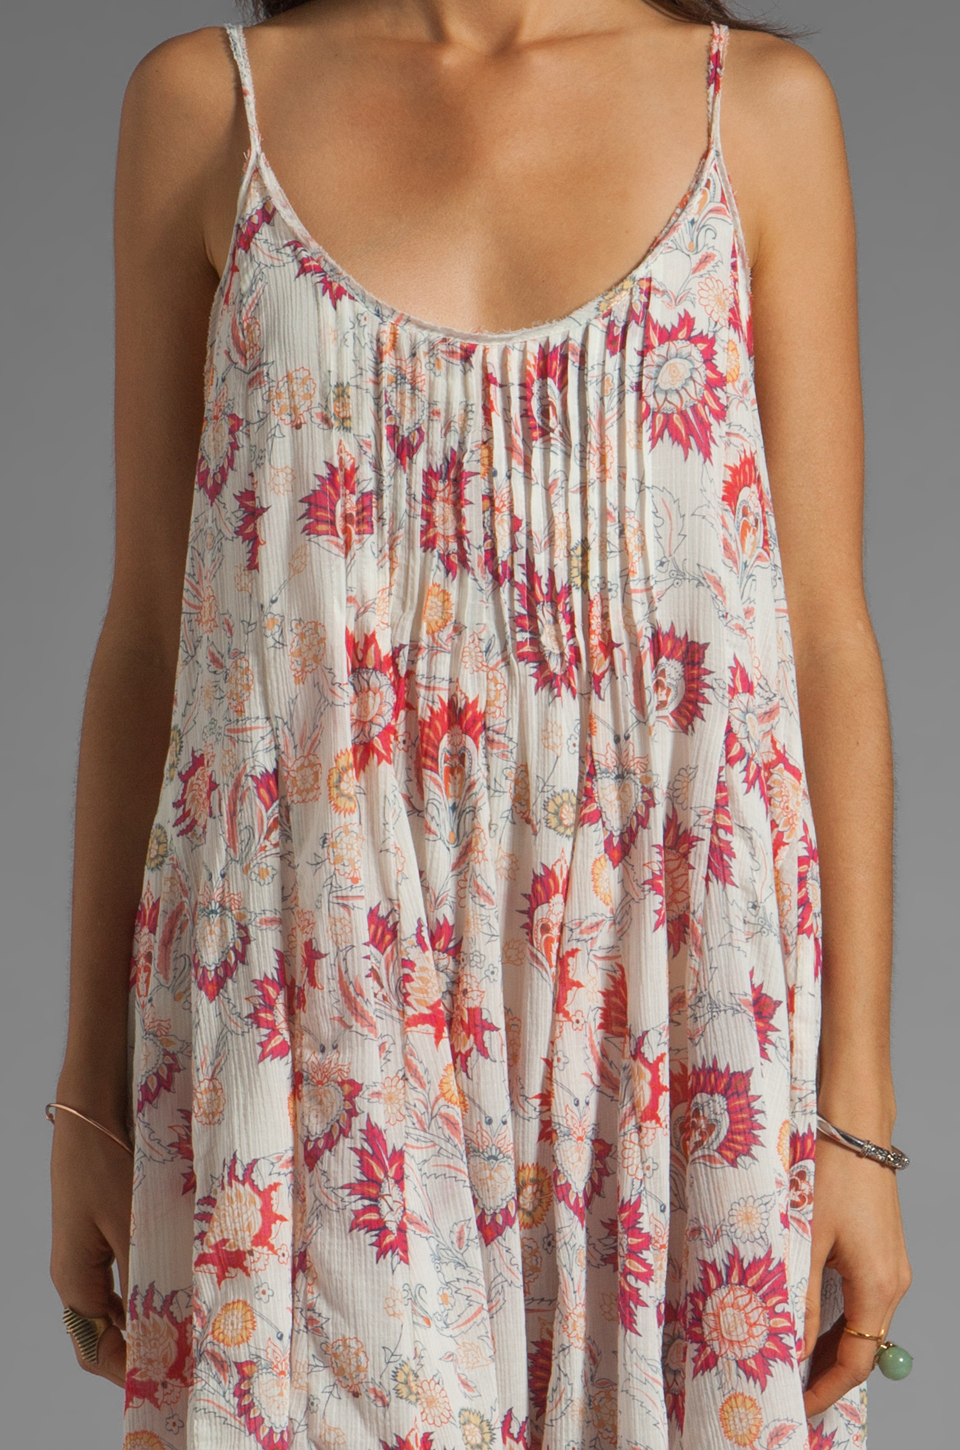 Free People Pintuck Gauze Dress in Ivory Combo